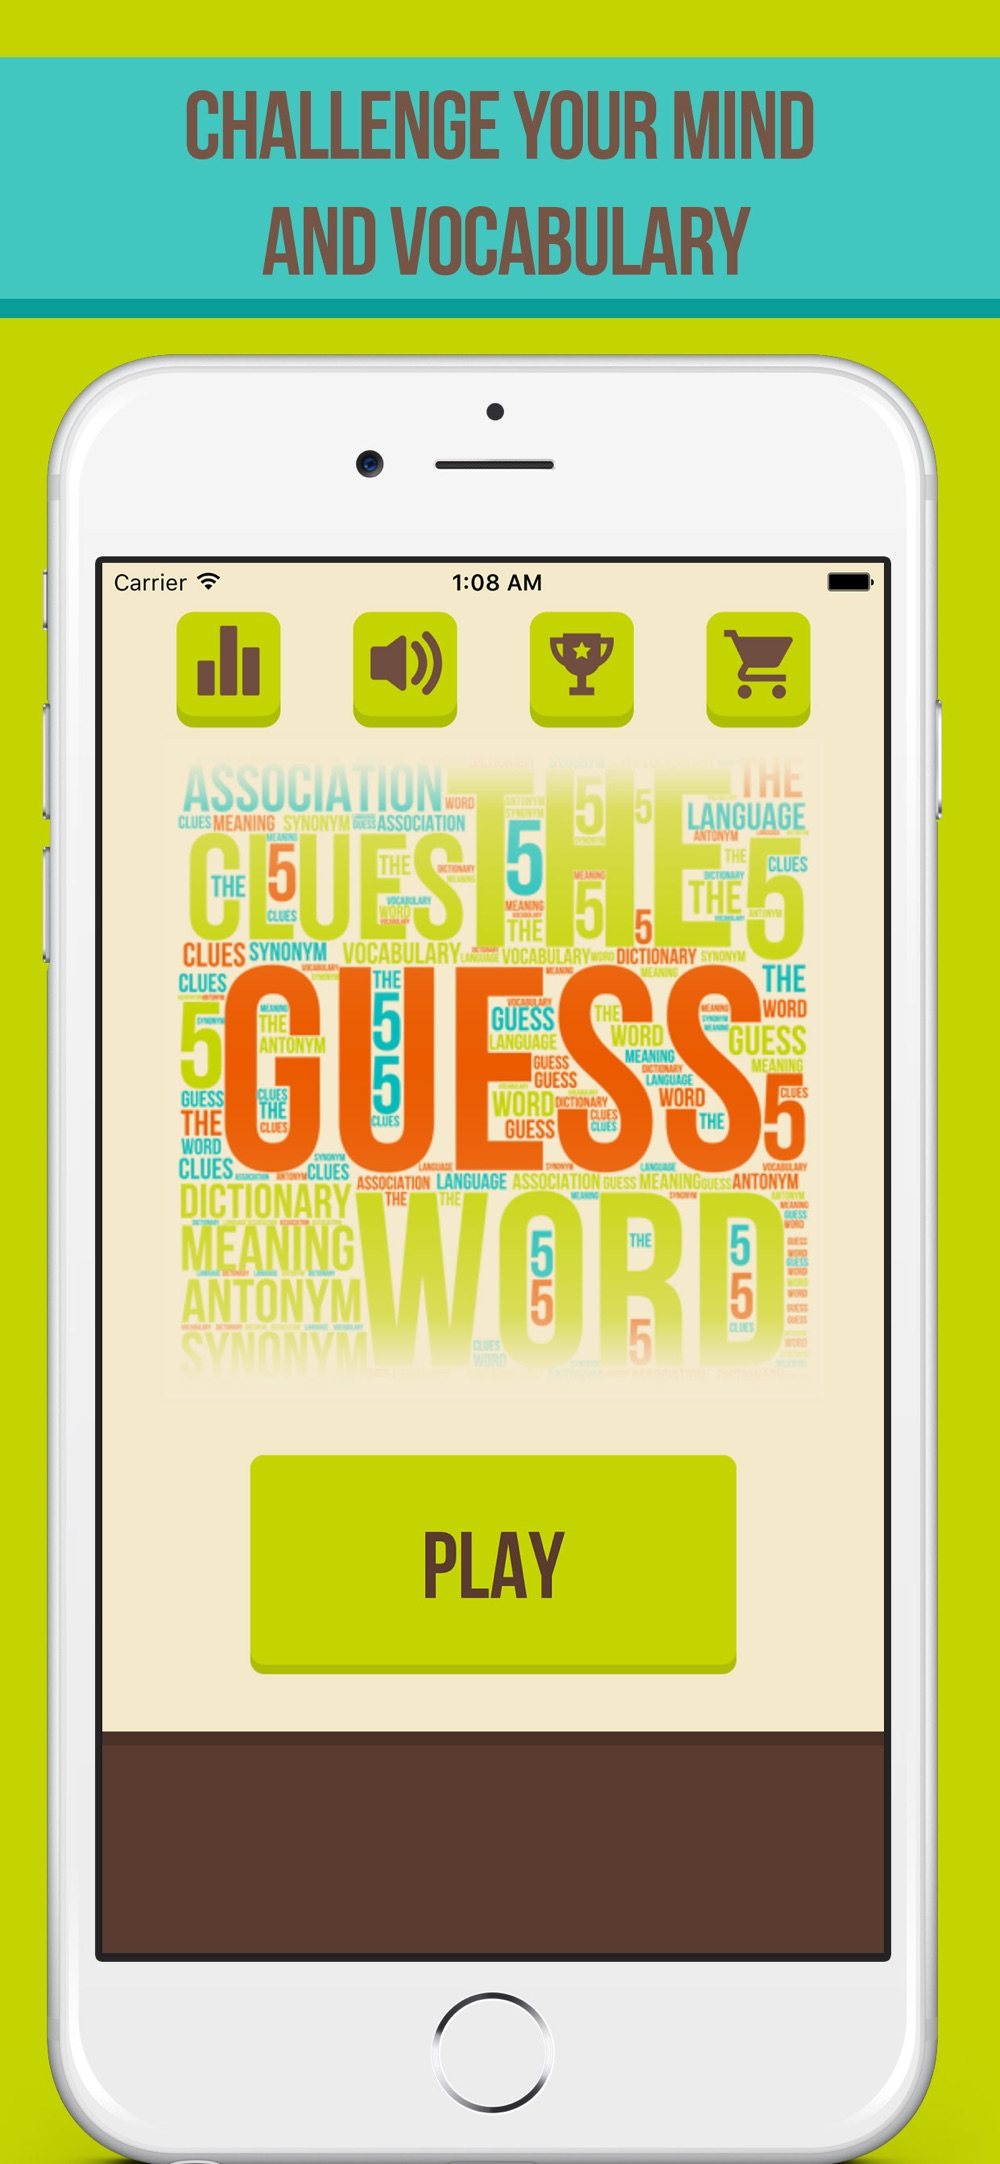 Hack tool for Guess the Word - 5 Clues Alias